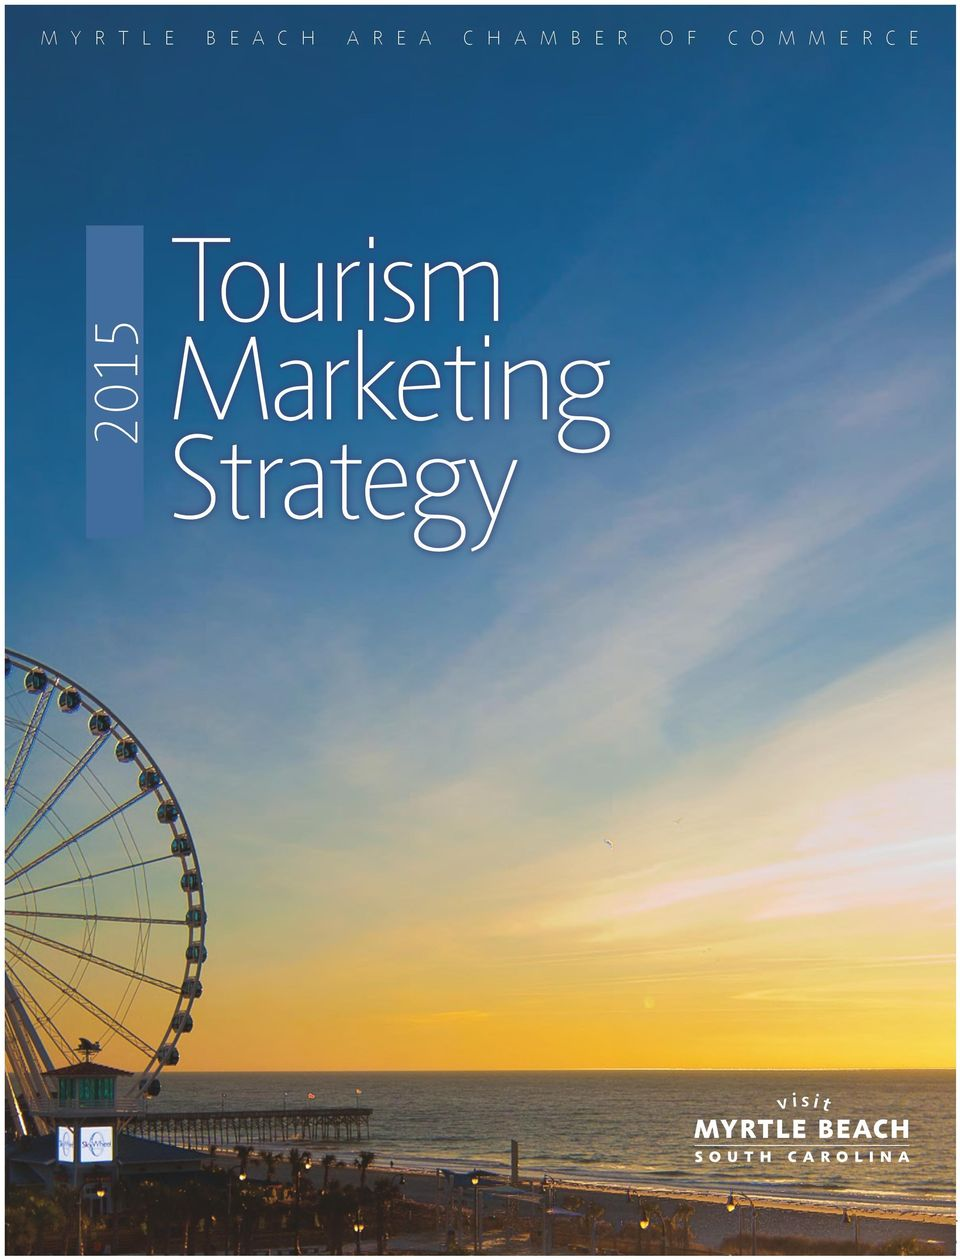 C E 2015 Tourism Marketing